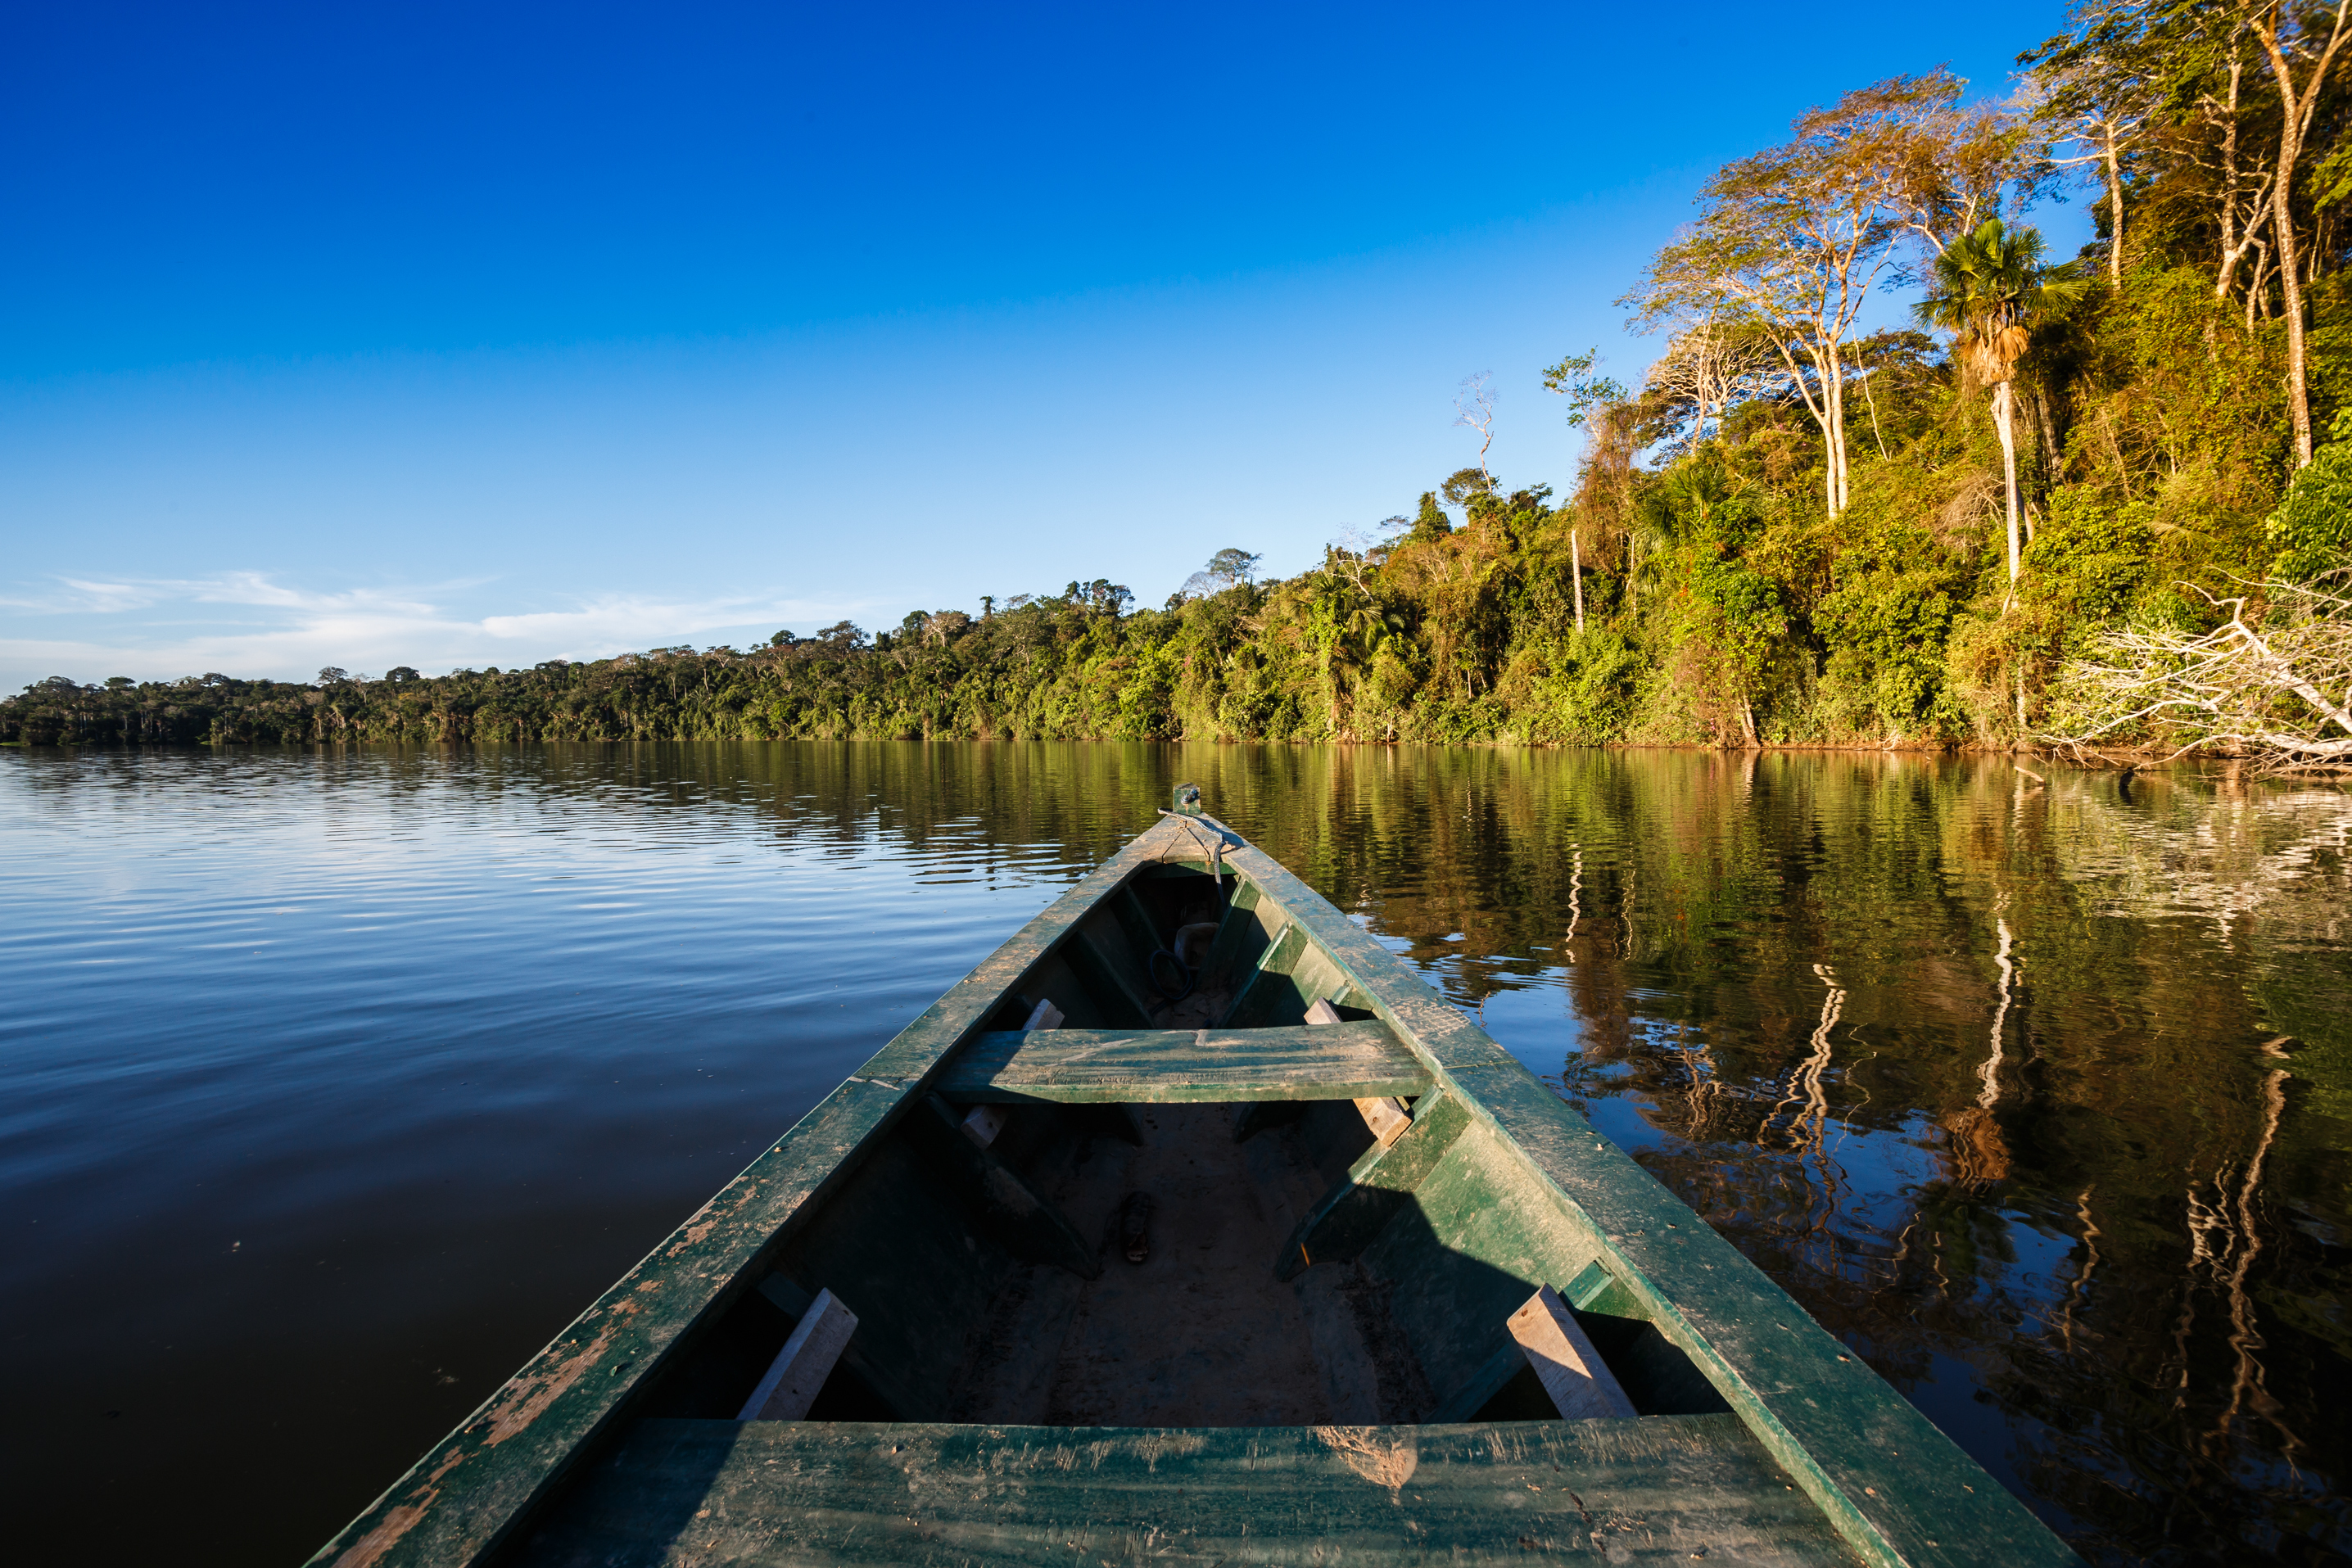 Things To Do in Peru's Amazon Rainforest All You Need to Know